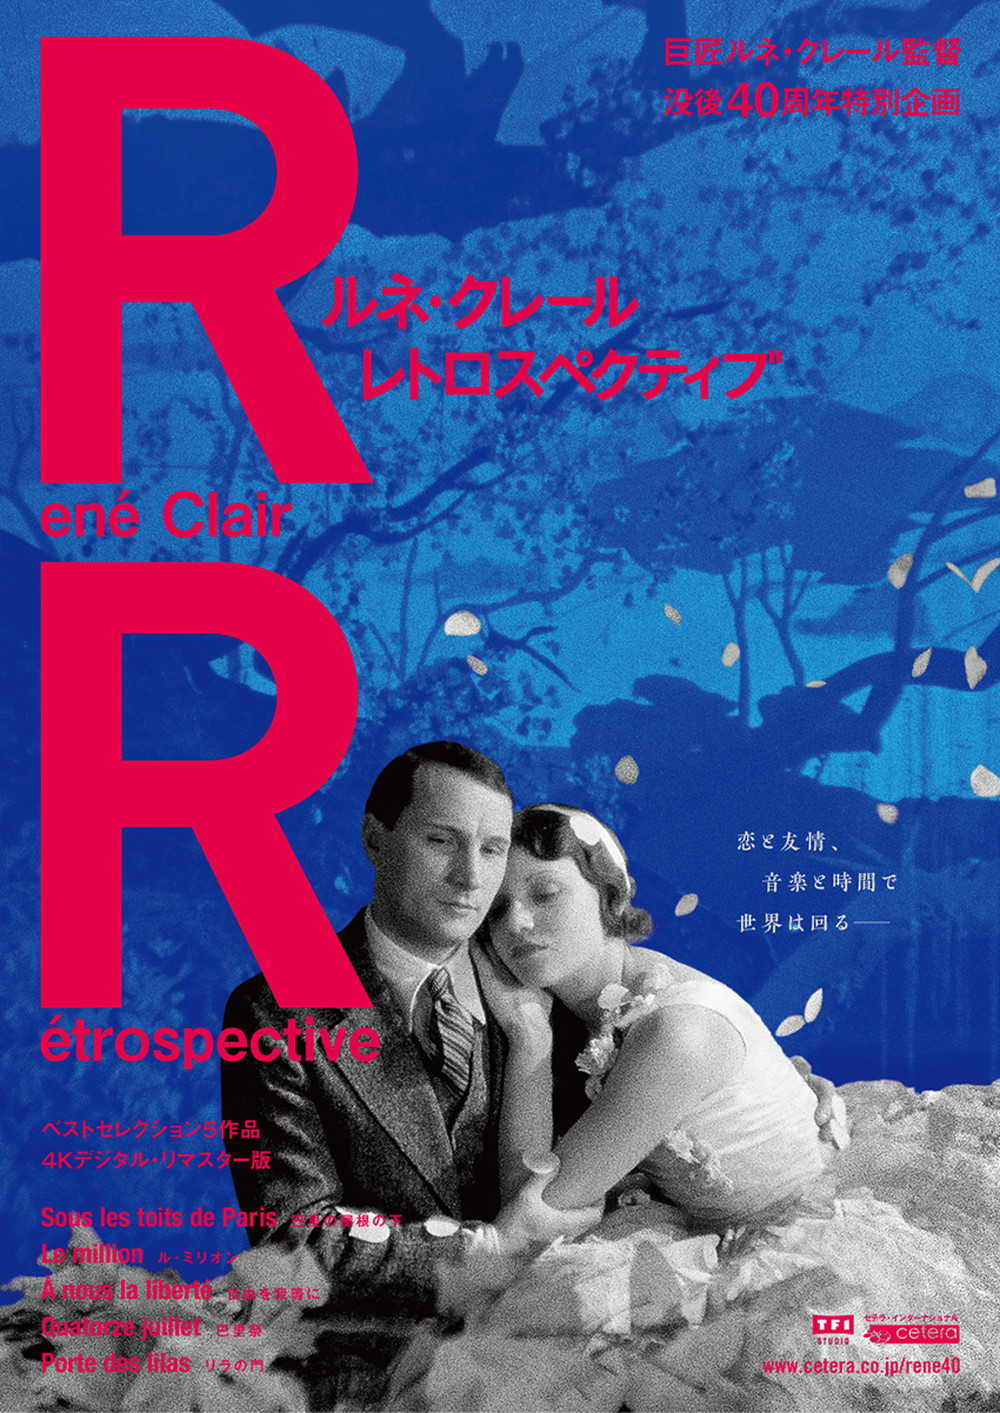 RENE CLAIR RETROSPECTIVE『ルネ・クレール レトロスペクティブ』POSTER